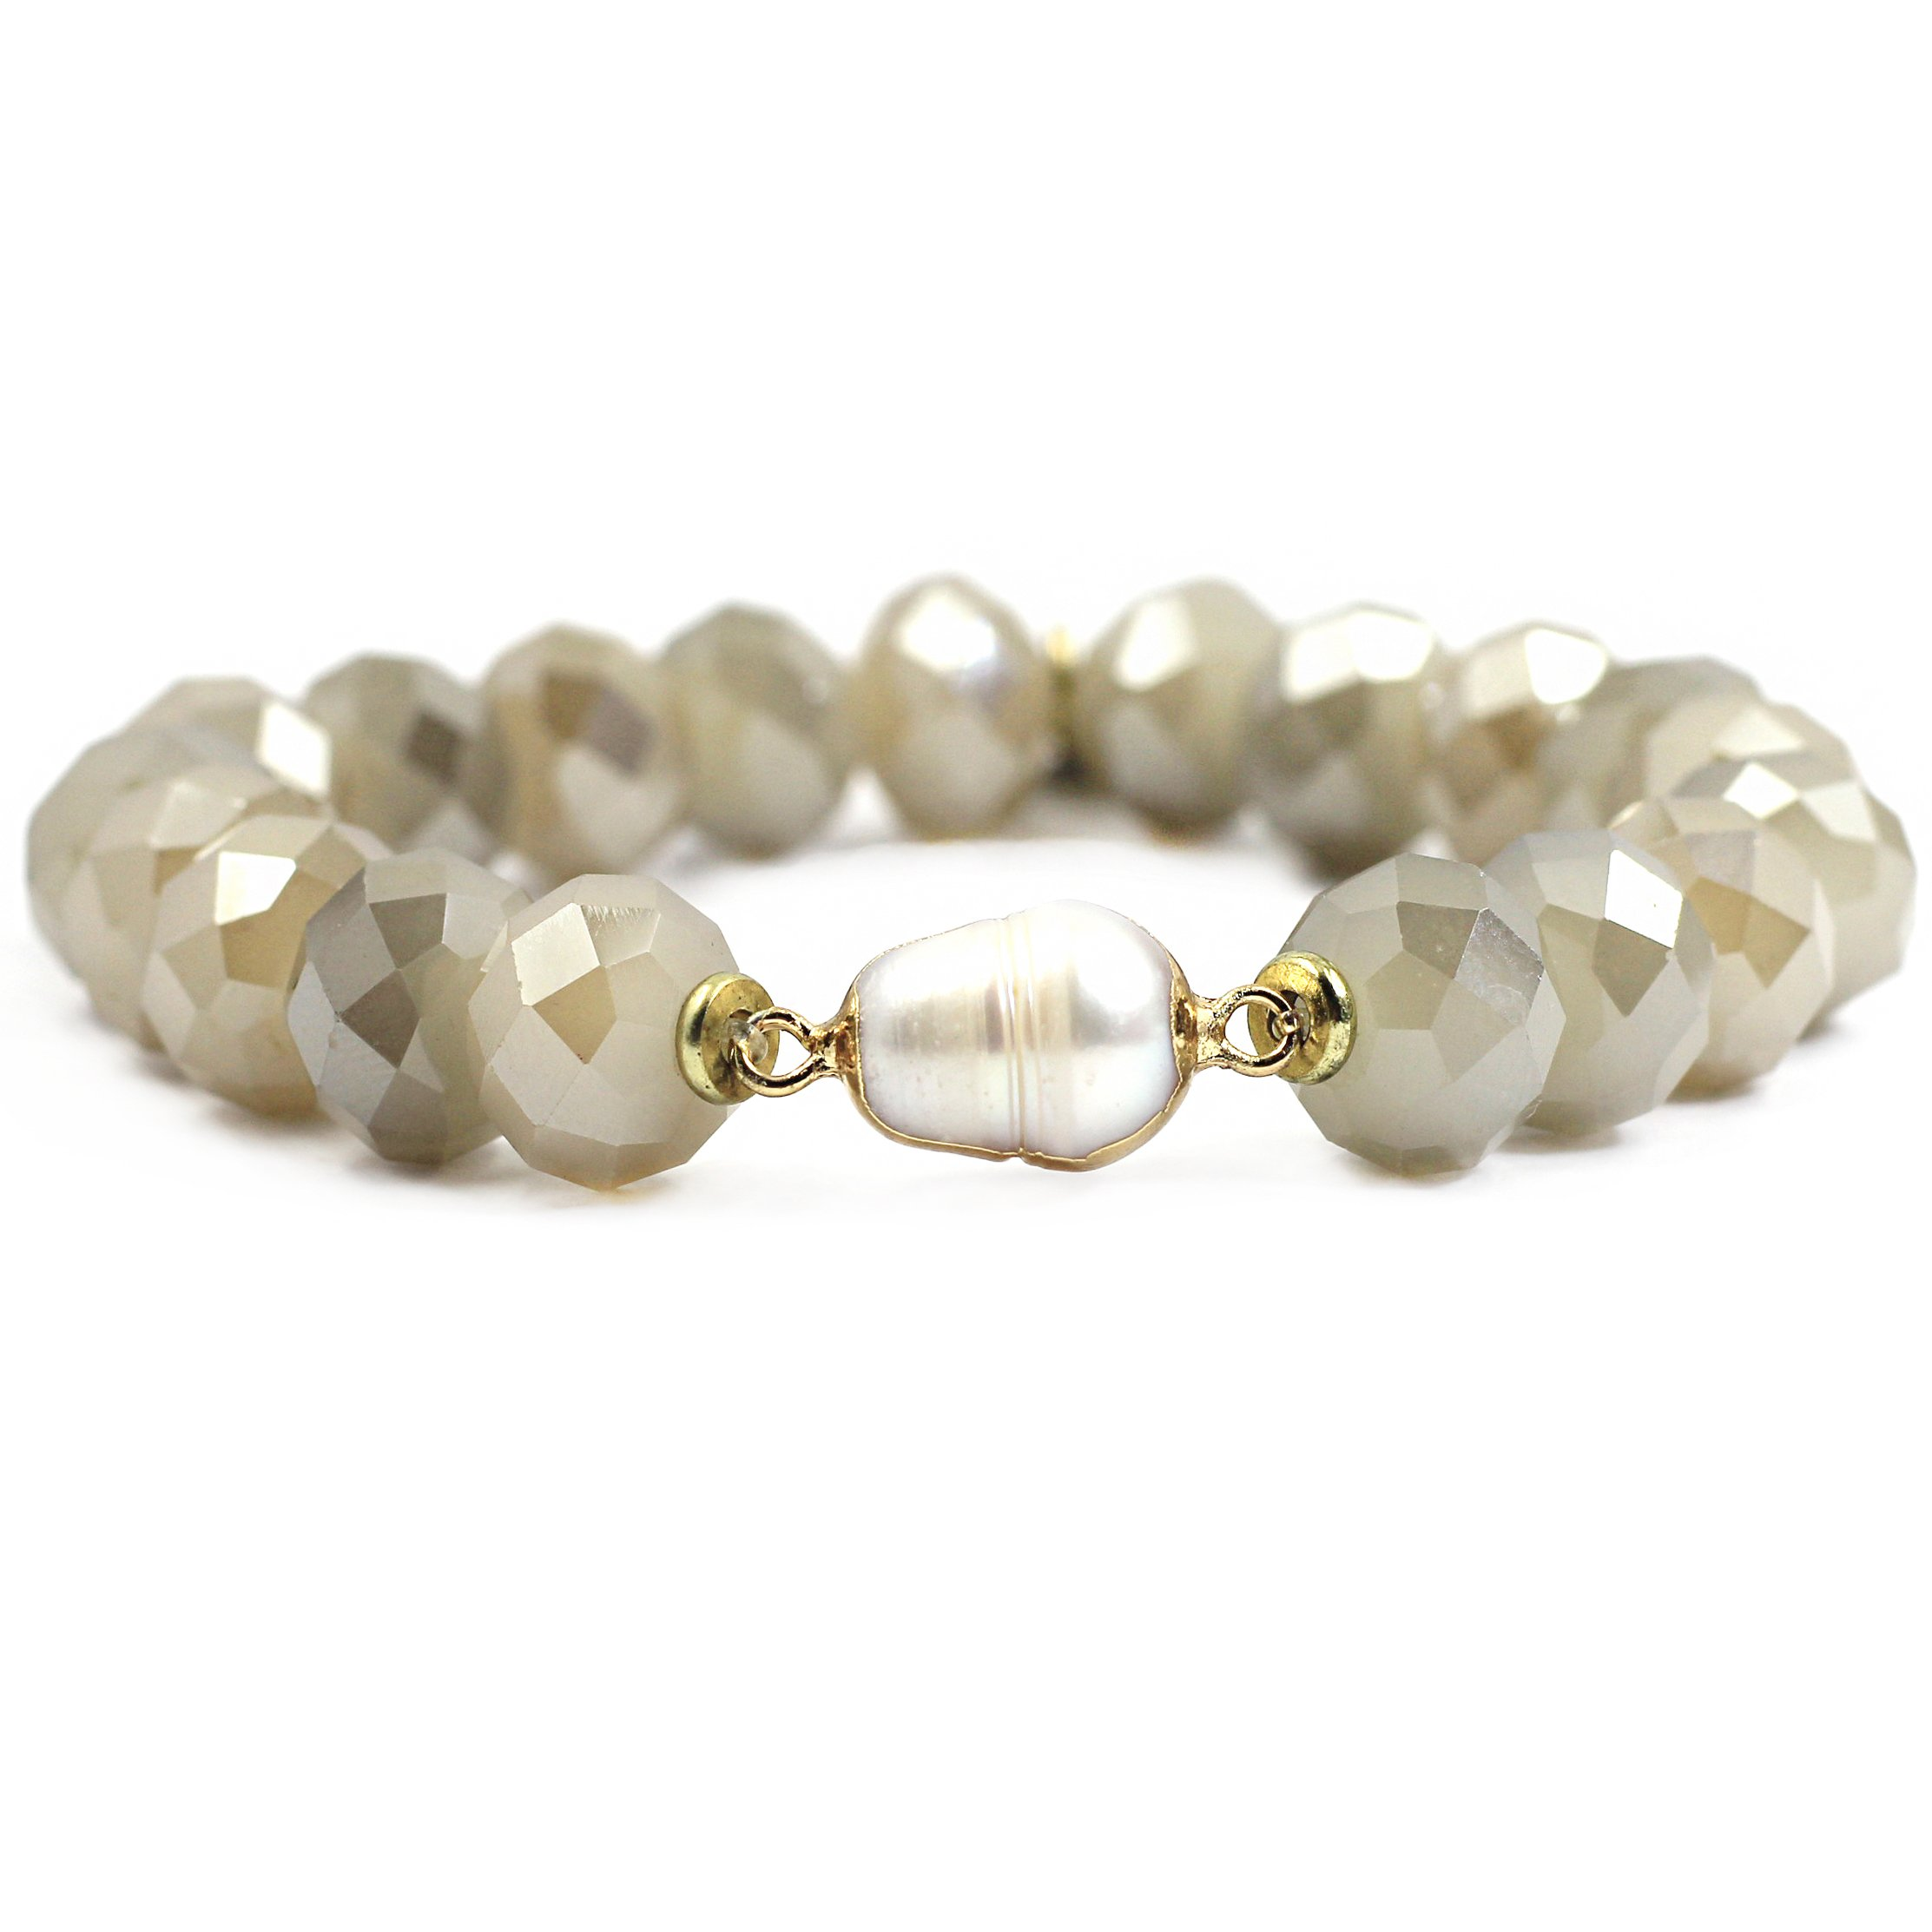 tom+alice New Arrival Beige Glass Jewelry Christmas Gift 11MM Beads Beaded Stretch Bracelets for Women Gold